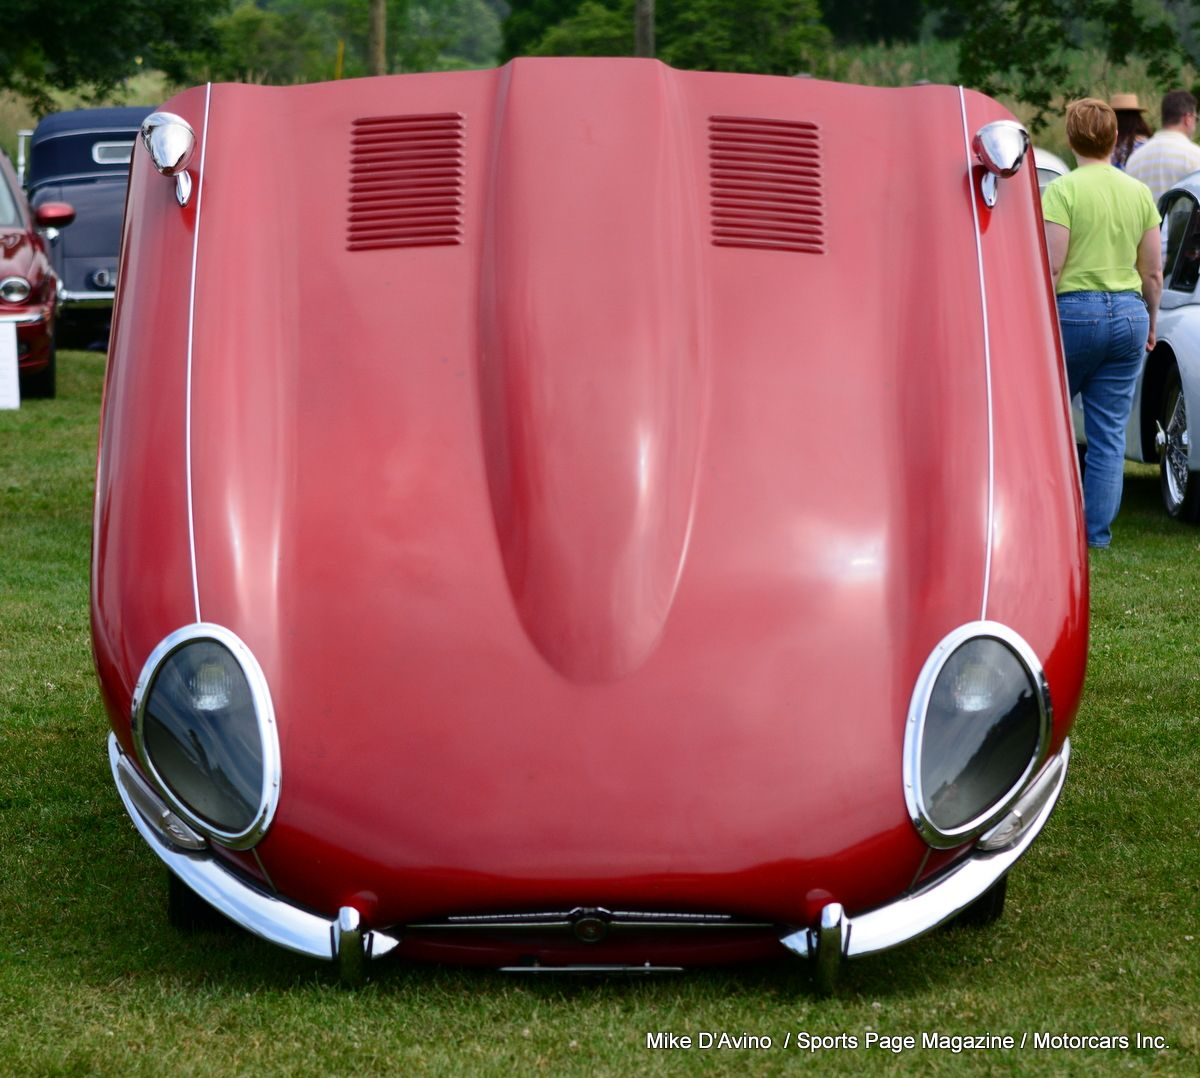 Gallery Motorsports: The 2018 Jaguar Club Of Southern New